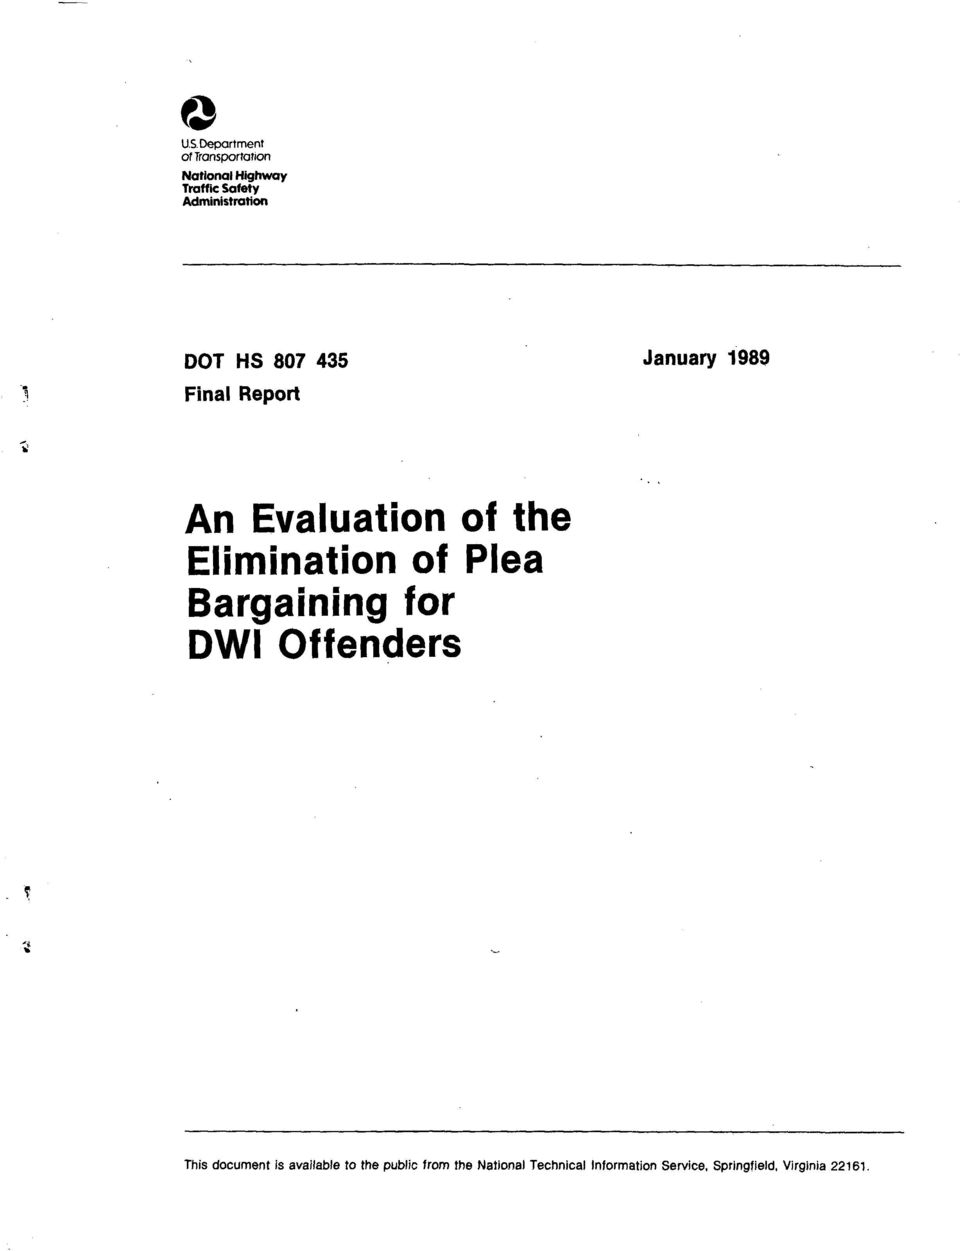 DOT HS 807 435 Final Report January 1989 An Evaluation of the Elimination of